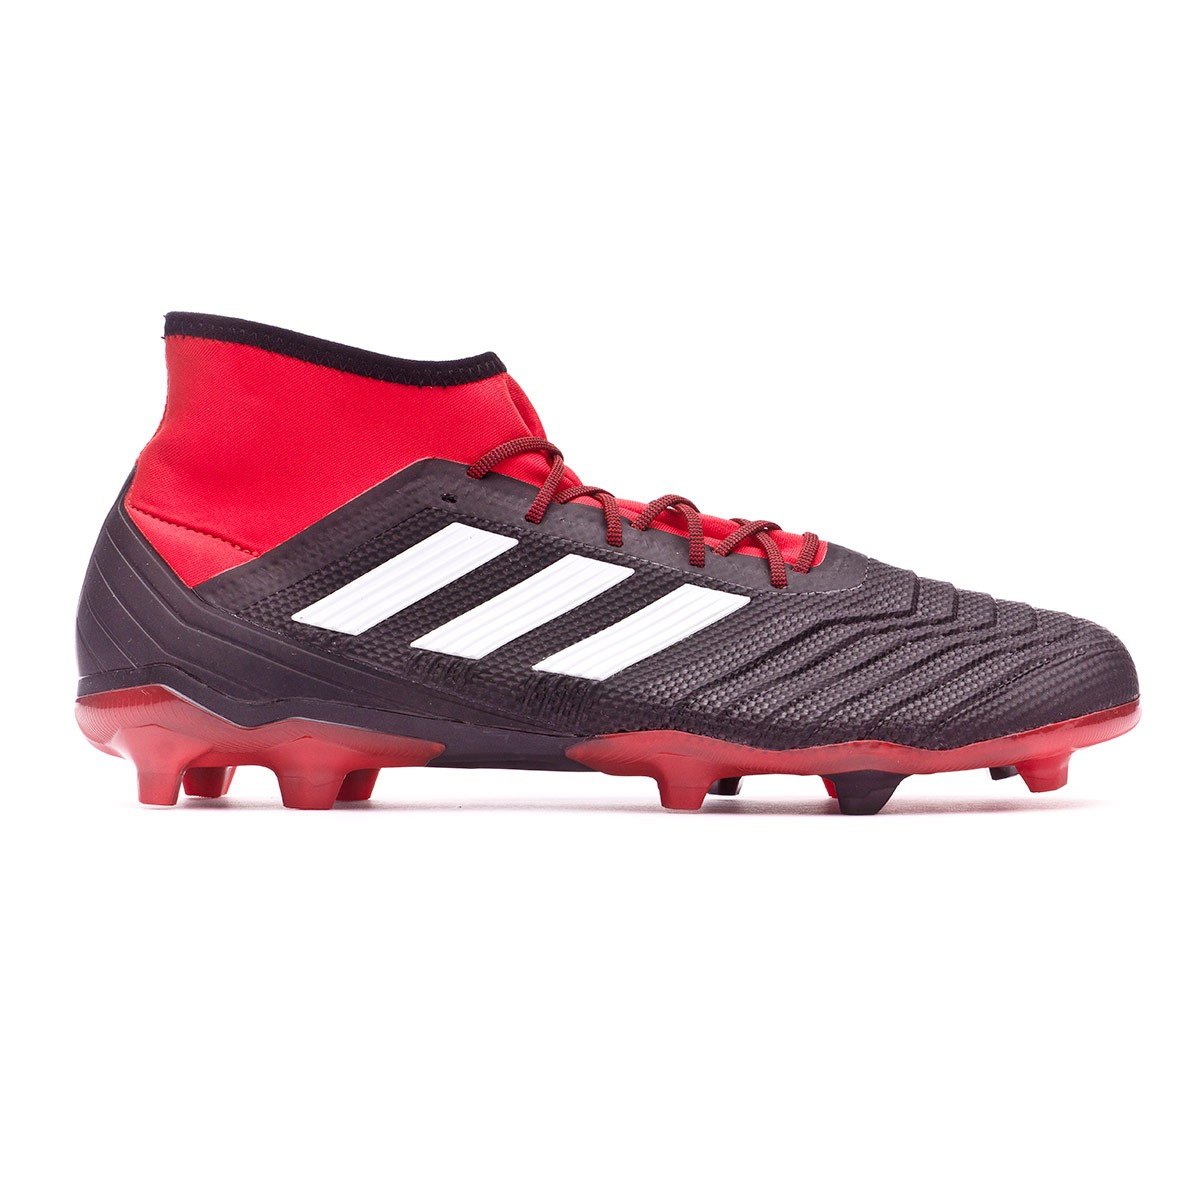 huge selection of 7c63e e9b28 Football Boots adidas Predator 18.2 FG Core black-White-Red - Football  store Fútbol Emotion